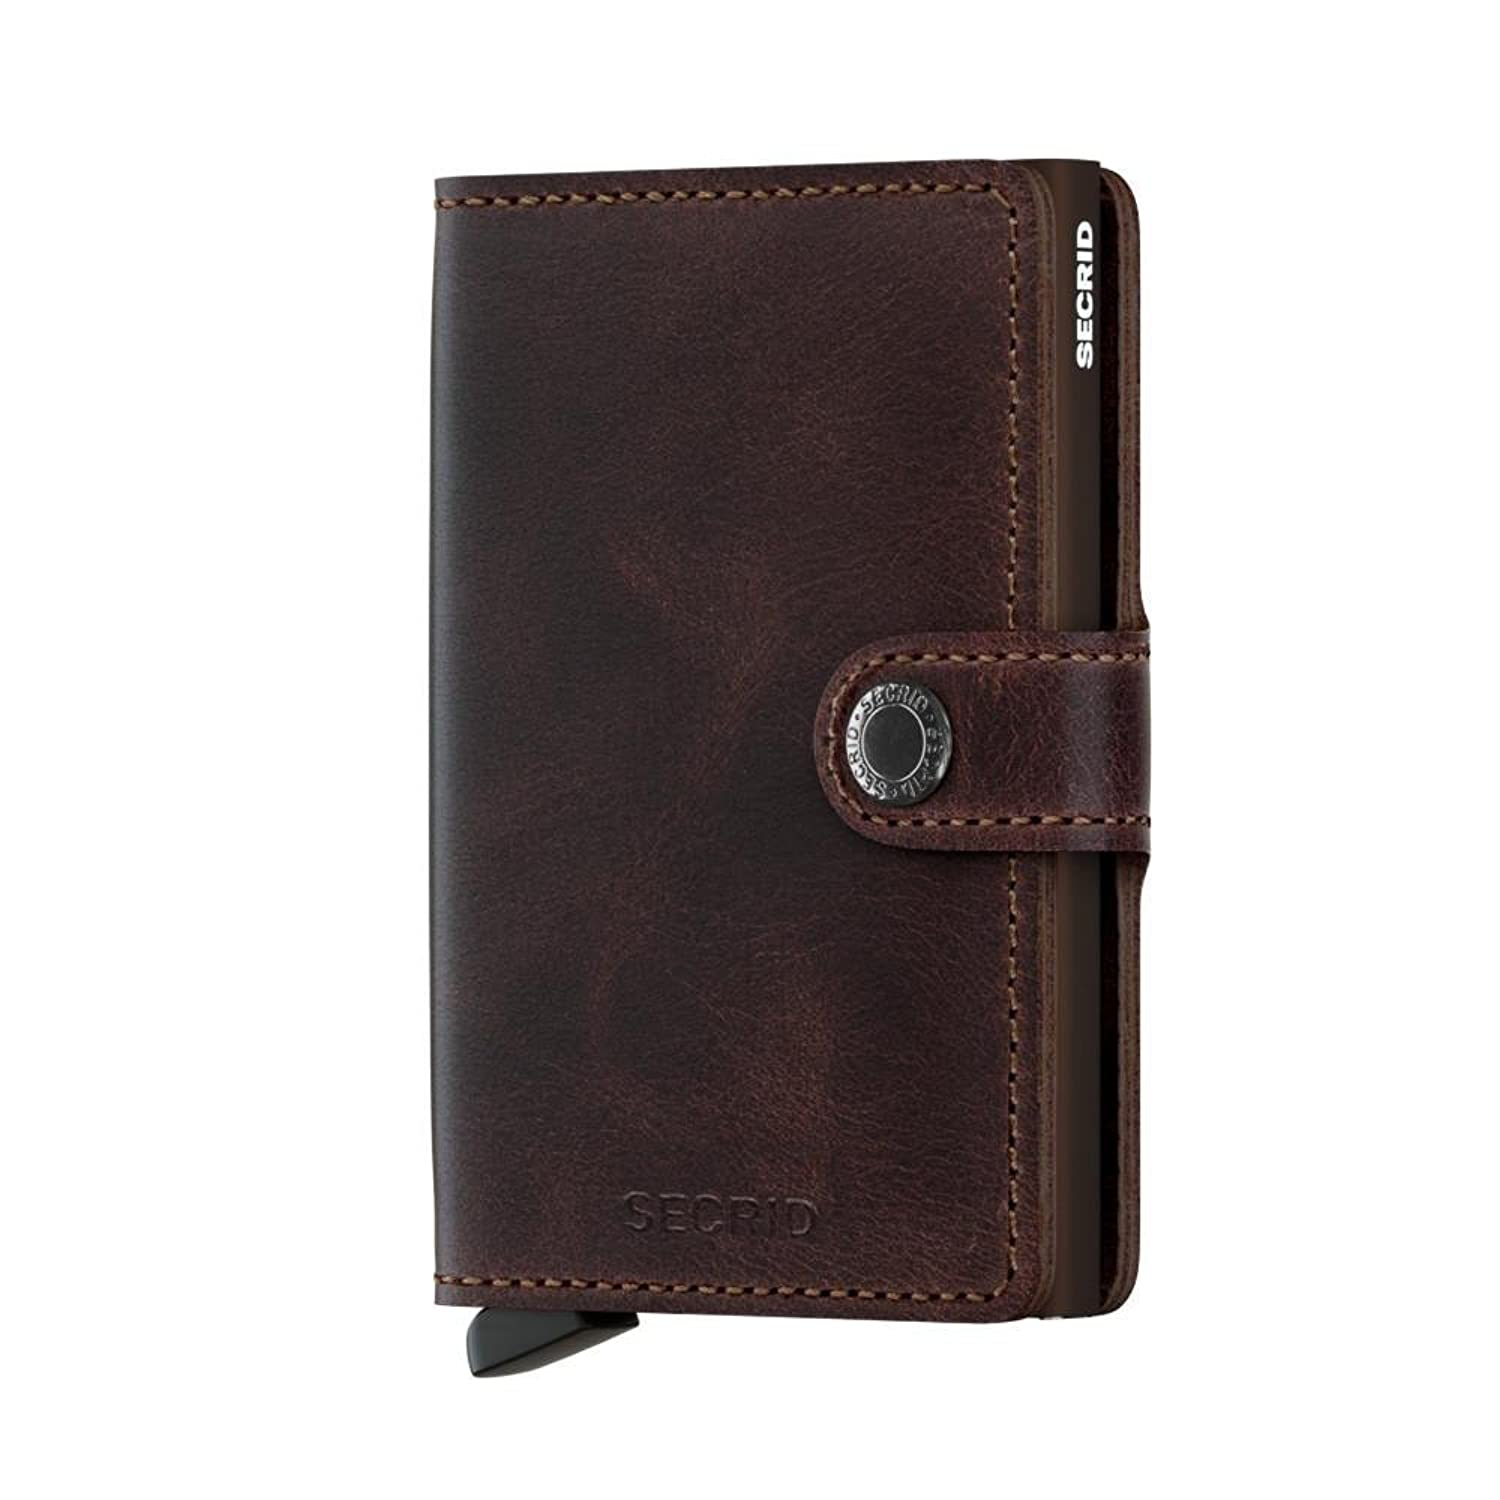 Secrid   Secrid Mini Wallet Genuine Leather Rfid Safe Card Case For Max 12 Cards by Secrid